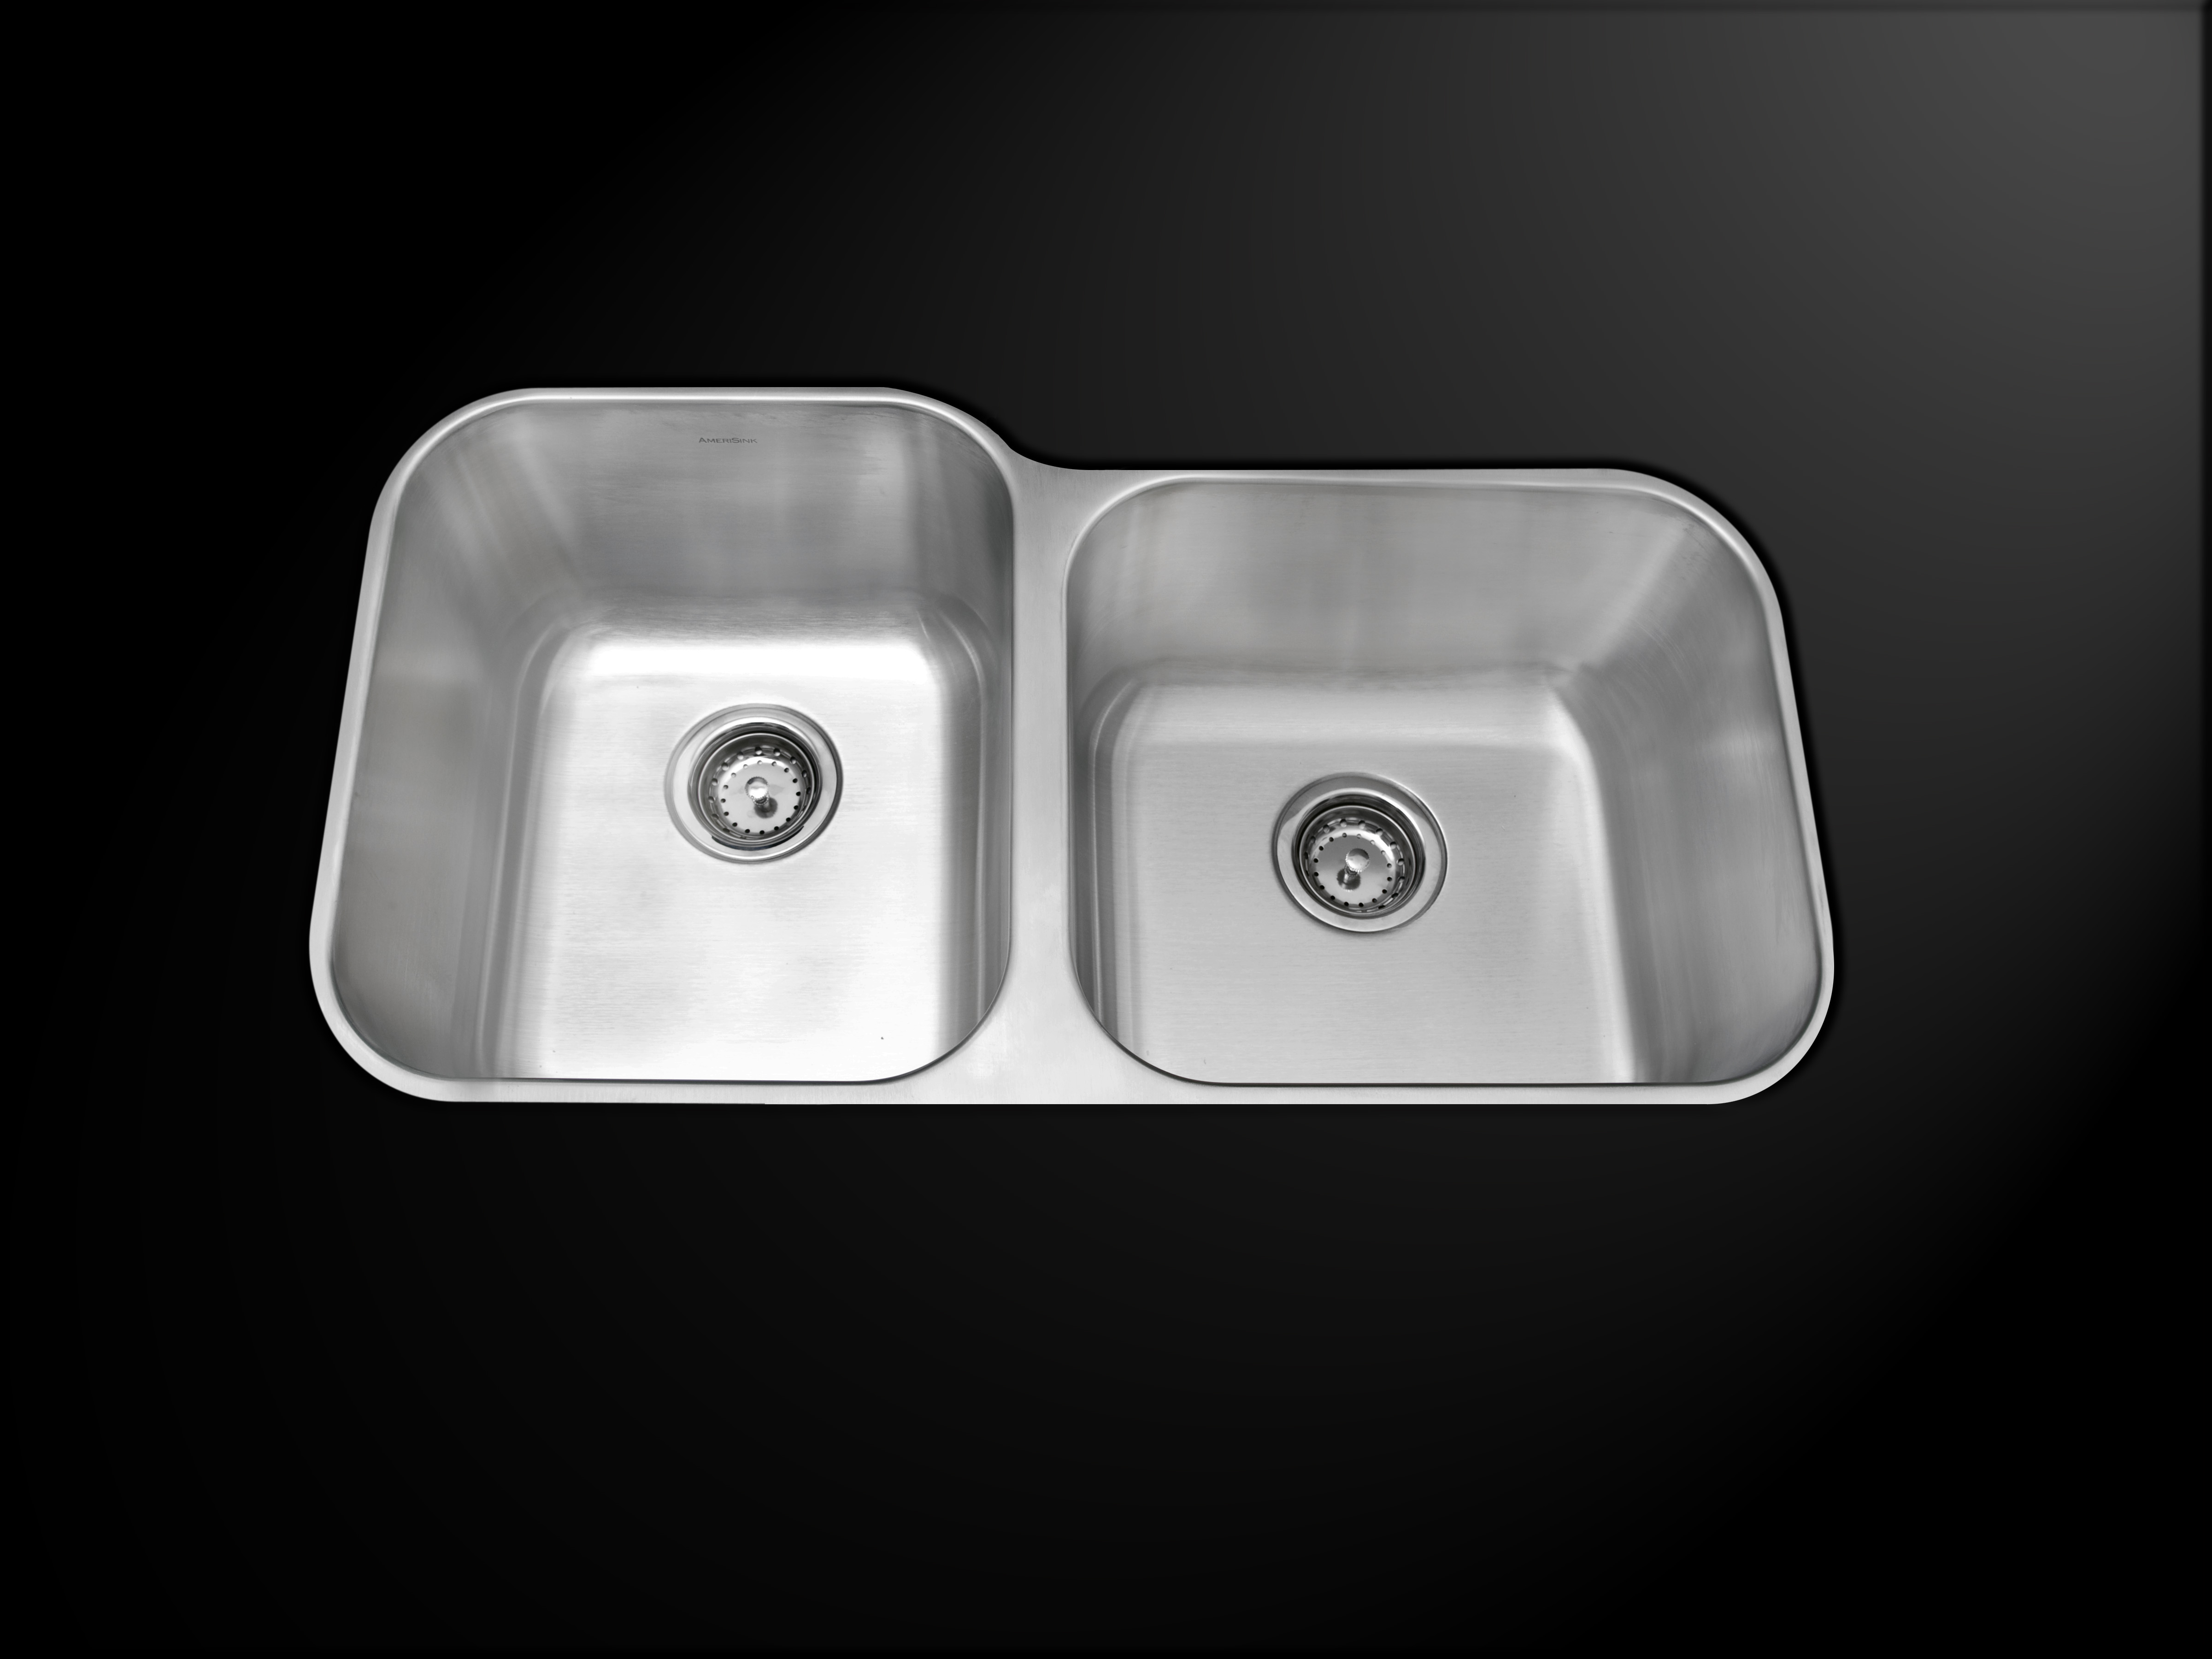 Granite composite kitchen sinks reviews - As102 33 X 17 72 X 10 10 18g Double Bowl Undermount Deluxe Stainless Steel Kitchen Sink